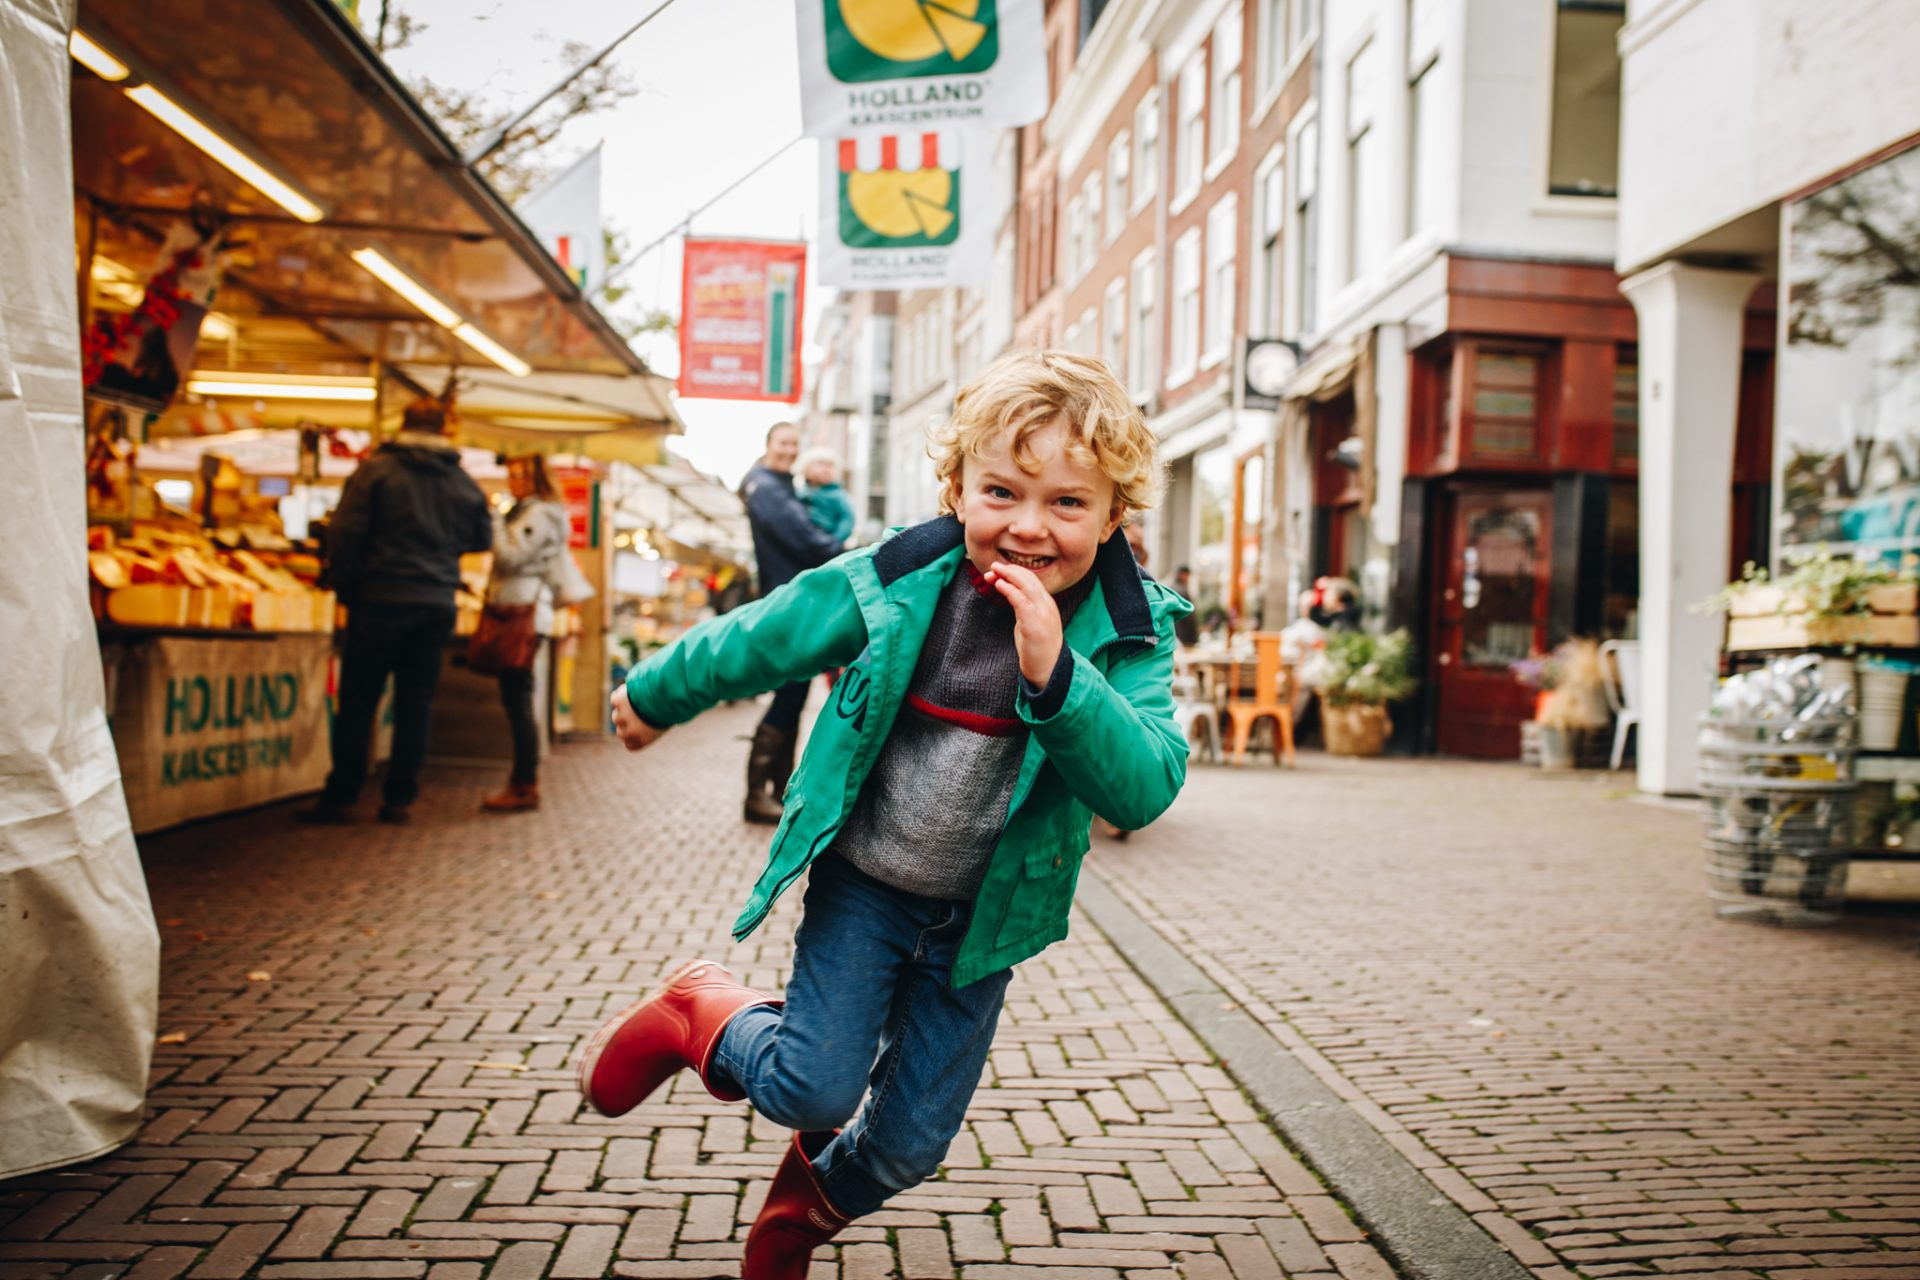 kid running towards me at the street market. He's smiling.